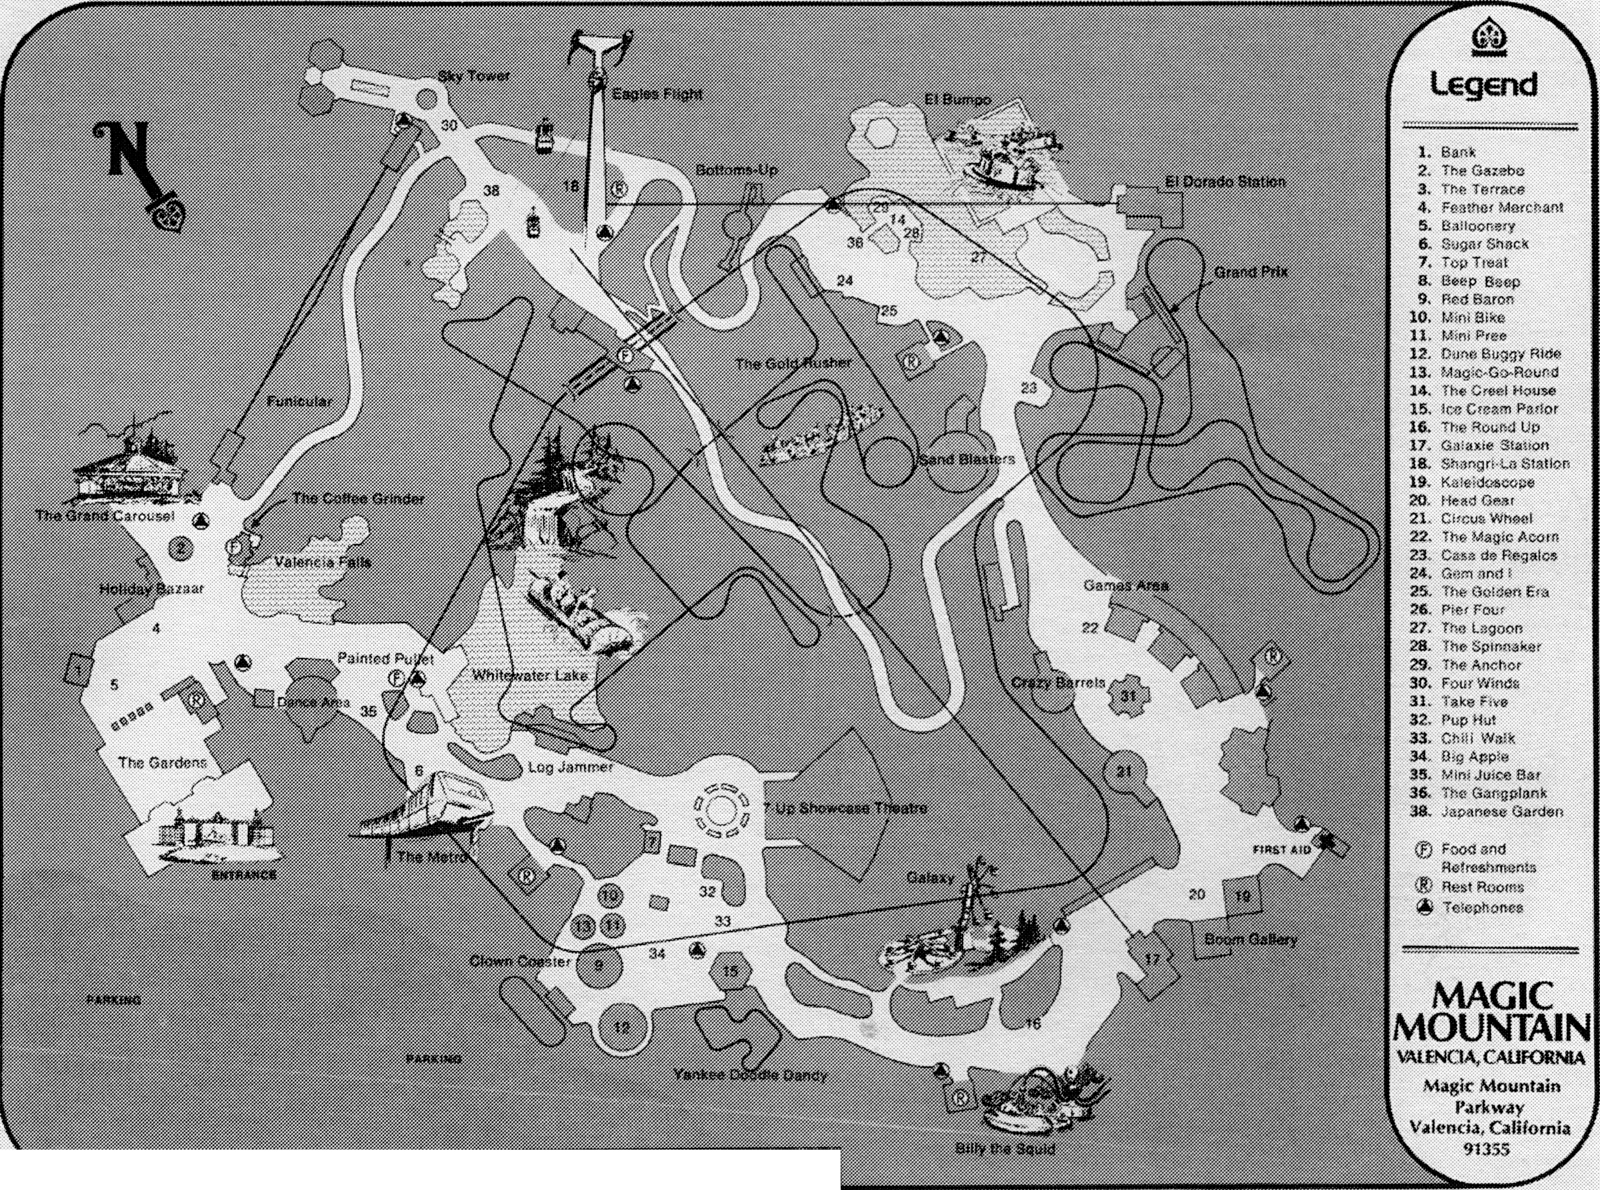 SCVHistory.com SR9613 | Magic Mountain | Park Map, 1971 on land of make believe map, islands of adventure map, six flags new jersey map, carowinds map, kings island map, great america map, knotts berry farm map, mt. olympus water & theme park map, cedar point map, new orleans six flags park map, busch gardens map, ghost town in the sky map, michigan's adventure map, blackpool pleasure beach map, raging waters map, magic kingdom map, 2014 six flags nj map, 2014 six flags chicago map, thorpe park map, disneyland map,